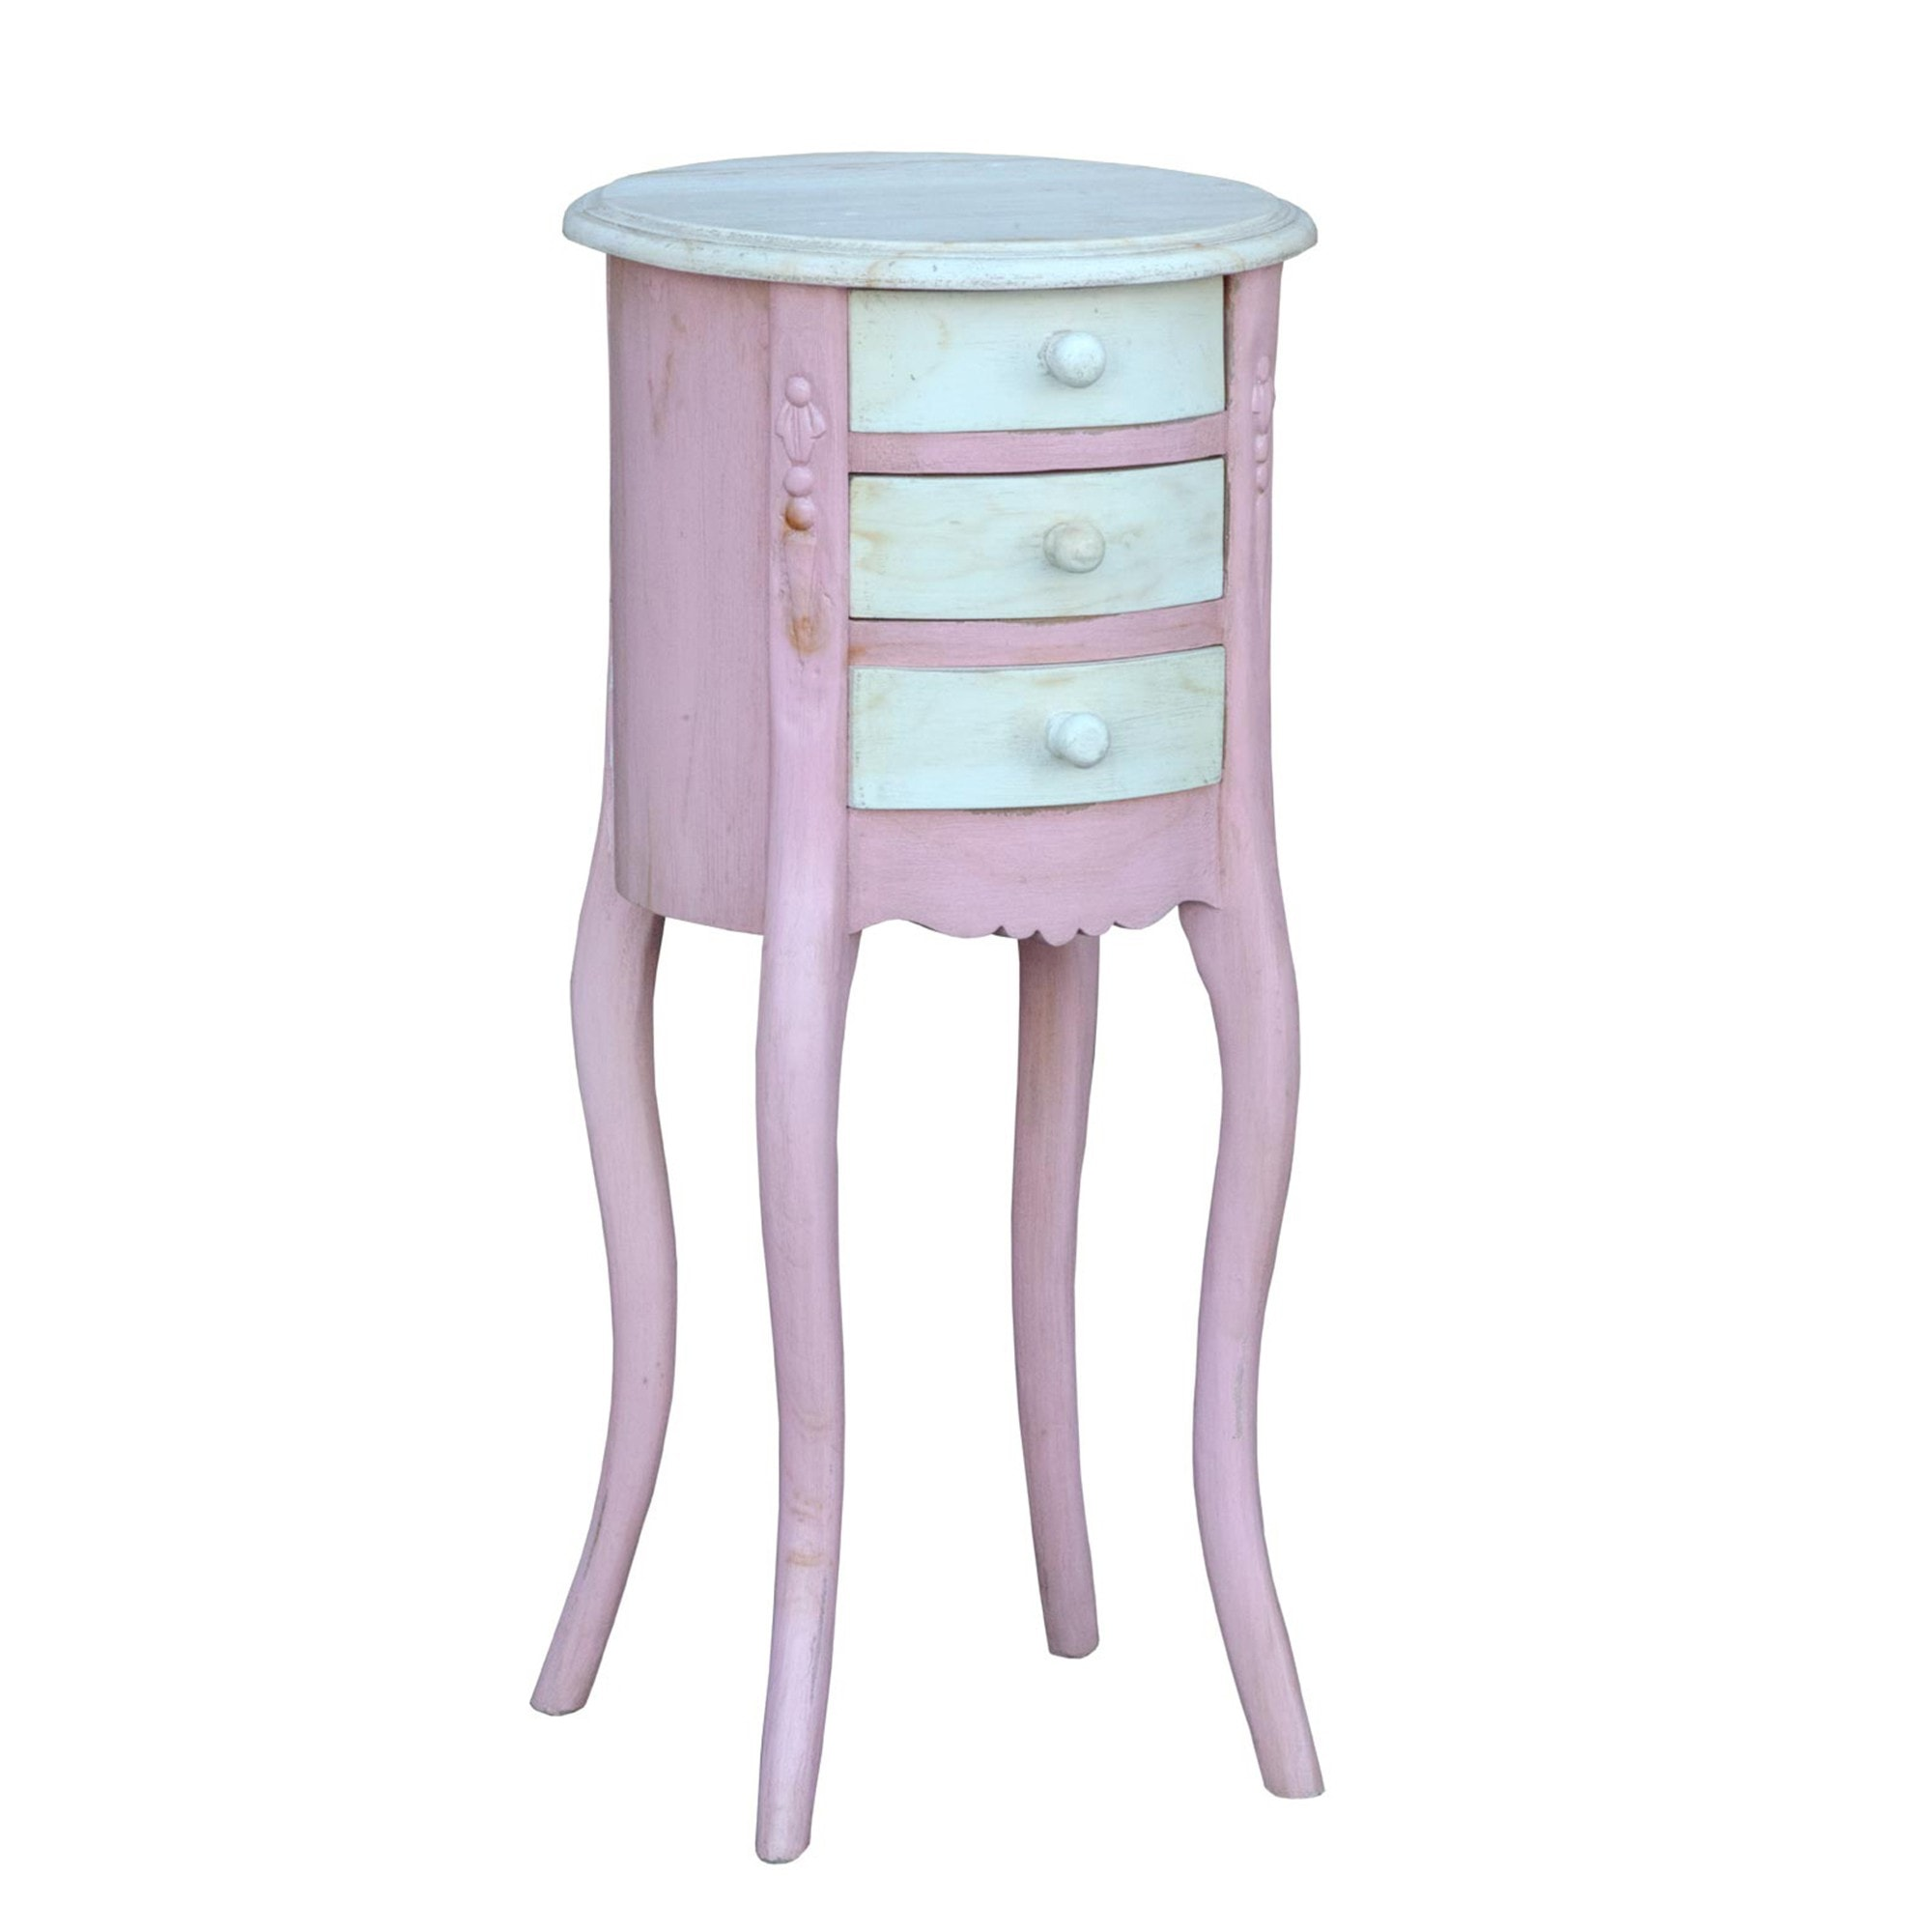 Isabella Antique French Style Pink And White Bedside Table